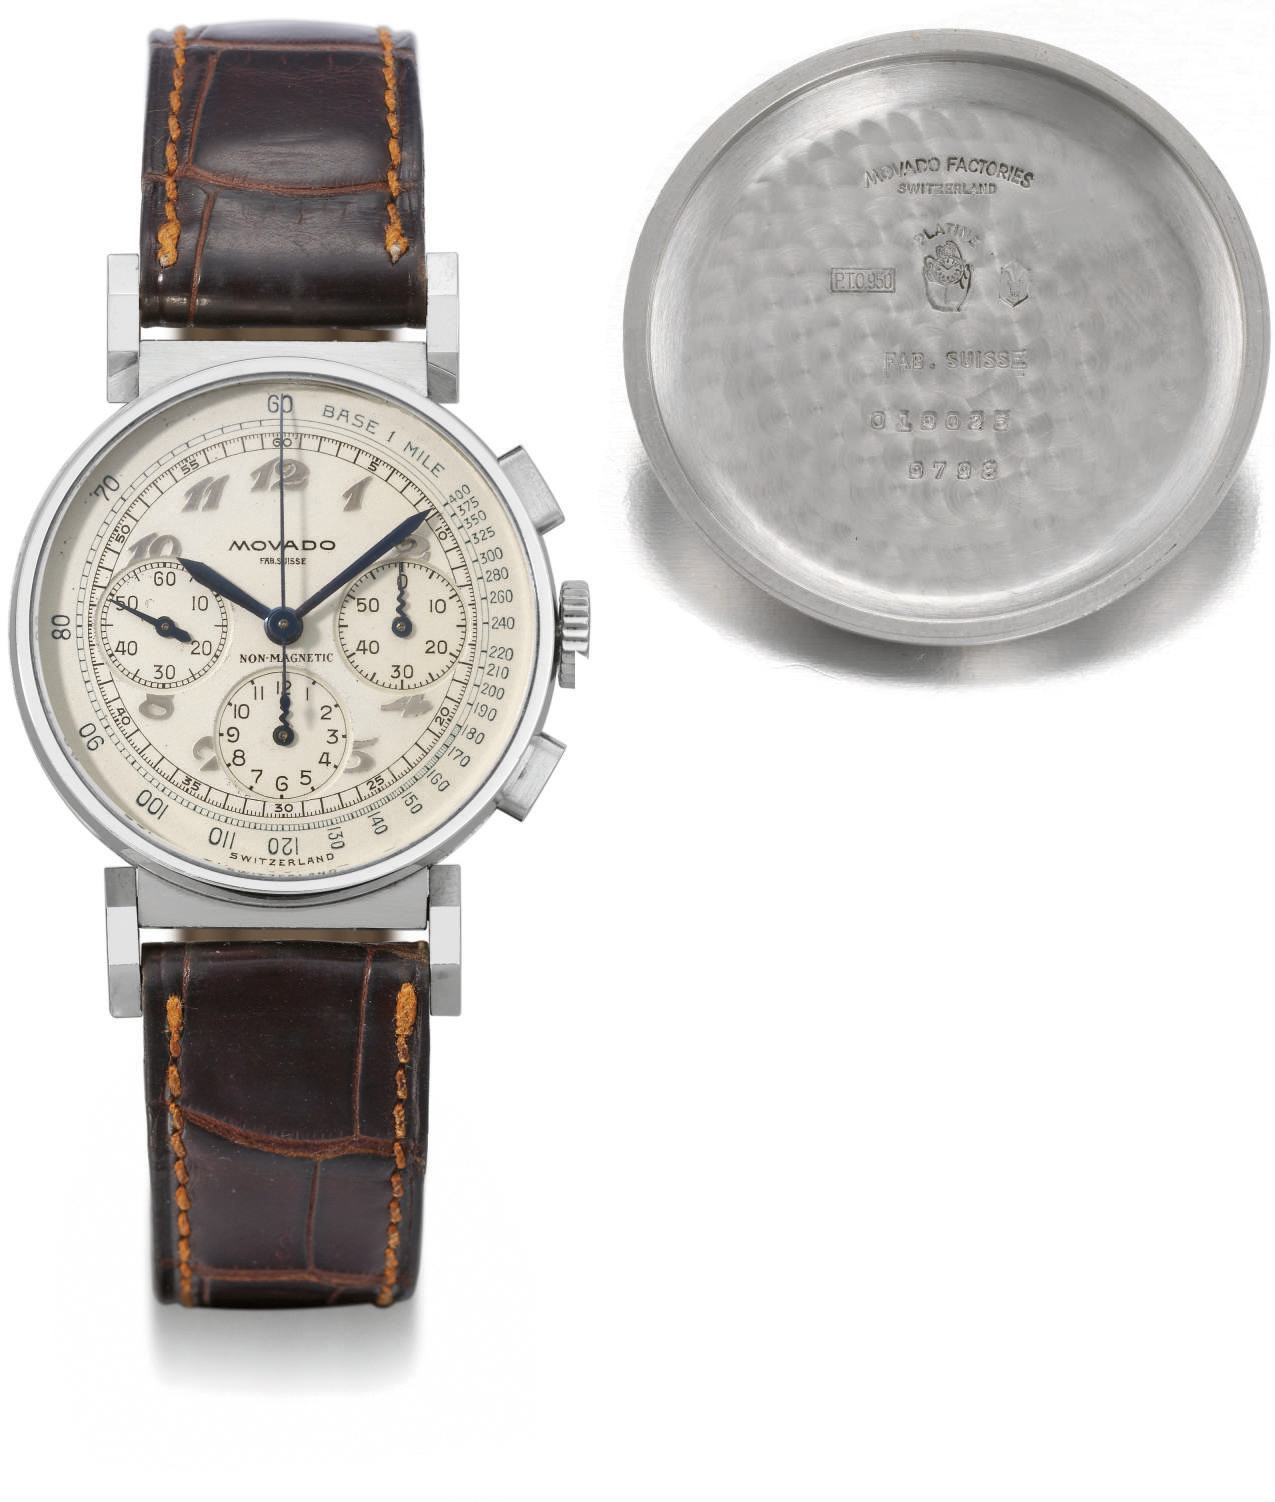 Movado. An extremely fine and rare platinum chronograph wristwatch with Breguet numerals and unusual flexible lugs